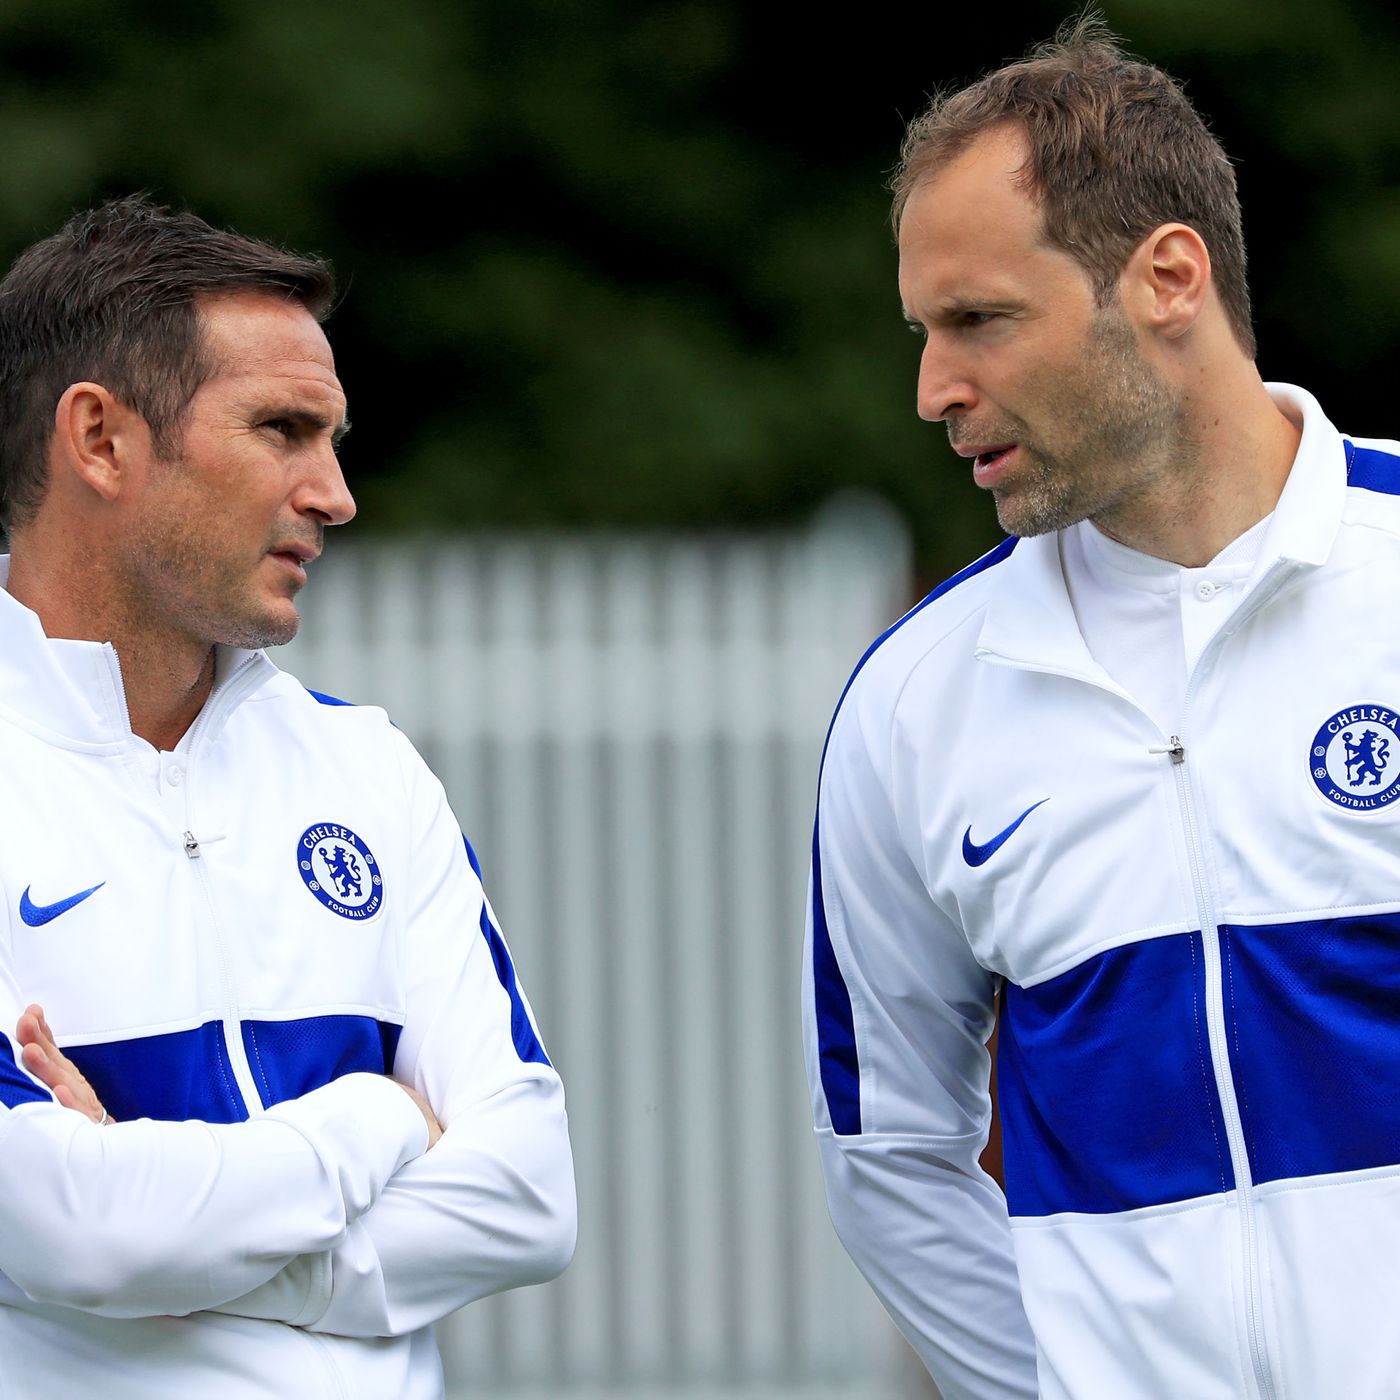 Chelsea Register Petr Cech In Premier League Squad Because 2020 Wasn T Weird Enough Yet We Ain T Got No History